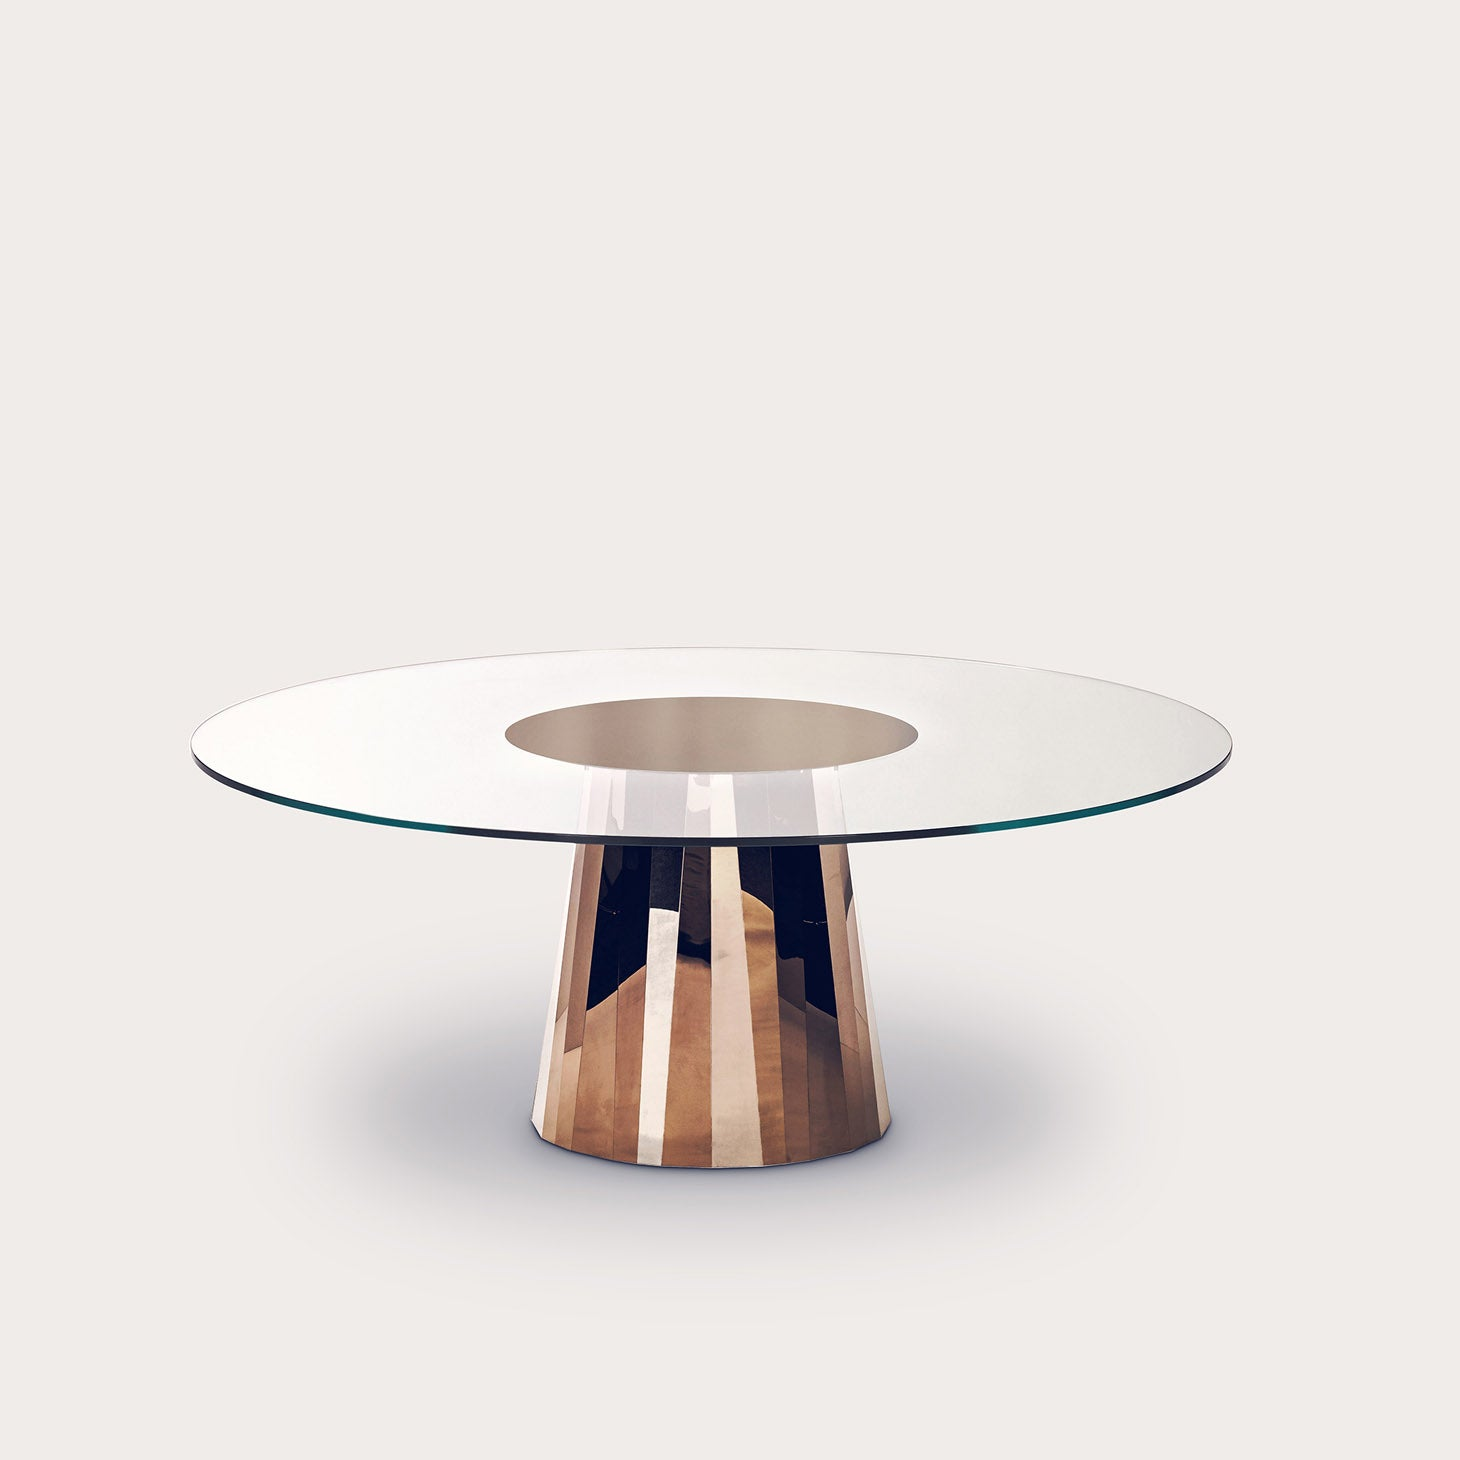 Pli Tables Victoria Wilmotte Designer Furniture Sku: 001-230-10263